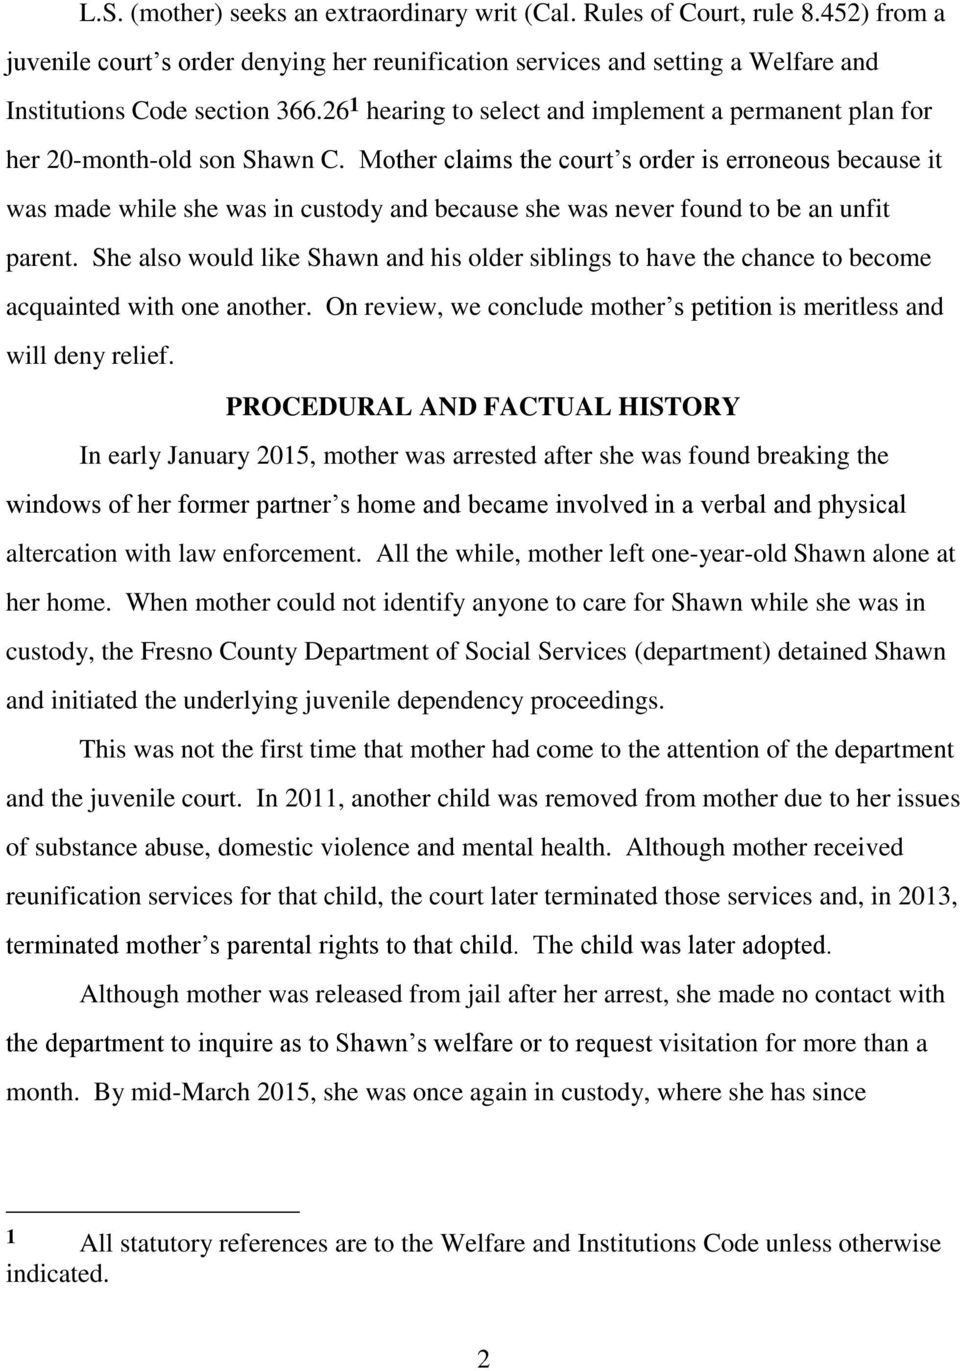 Mother claims the court s order is erroneous because it was made while she was in custody and because she was never found to be an unfit parent.